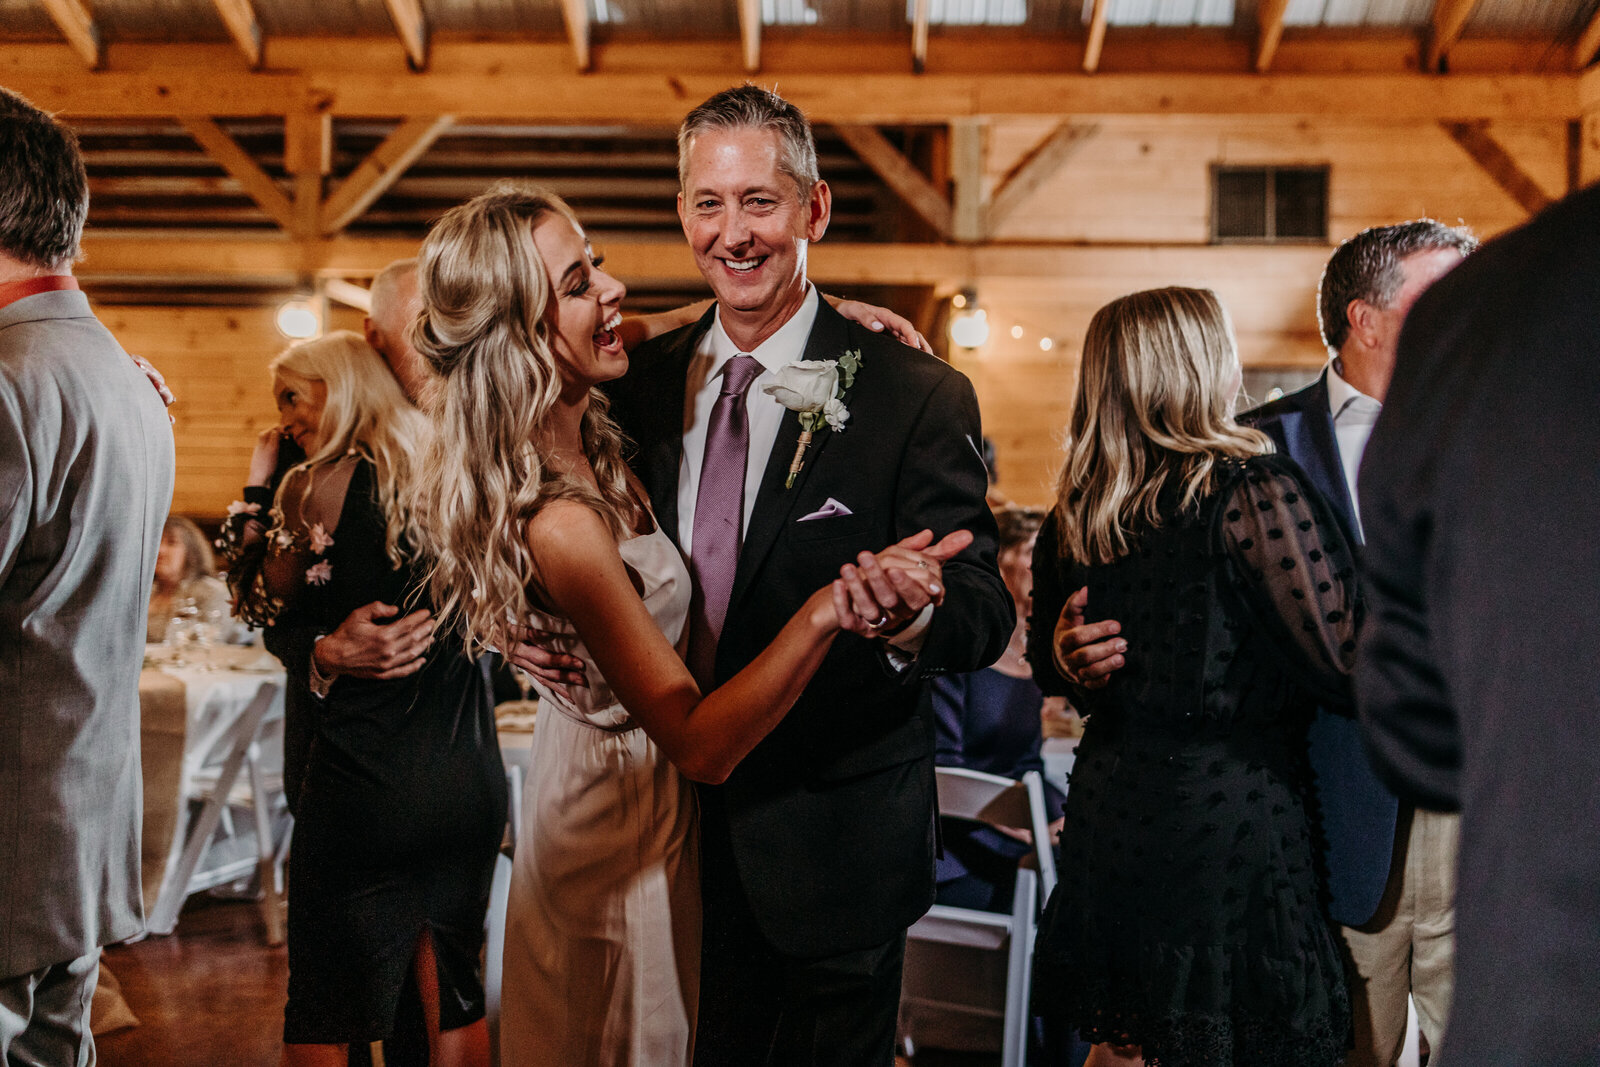 J.Michelle Photography photographs guests dance during a vintage oaks farm wedding in Athens, Ga